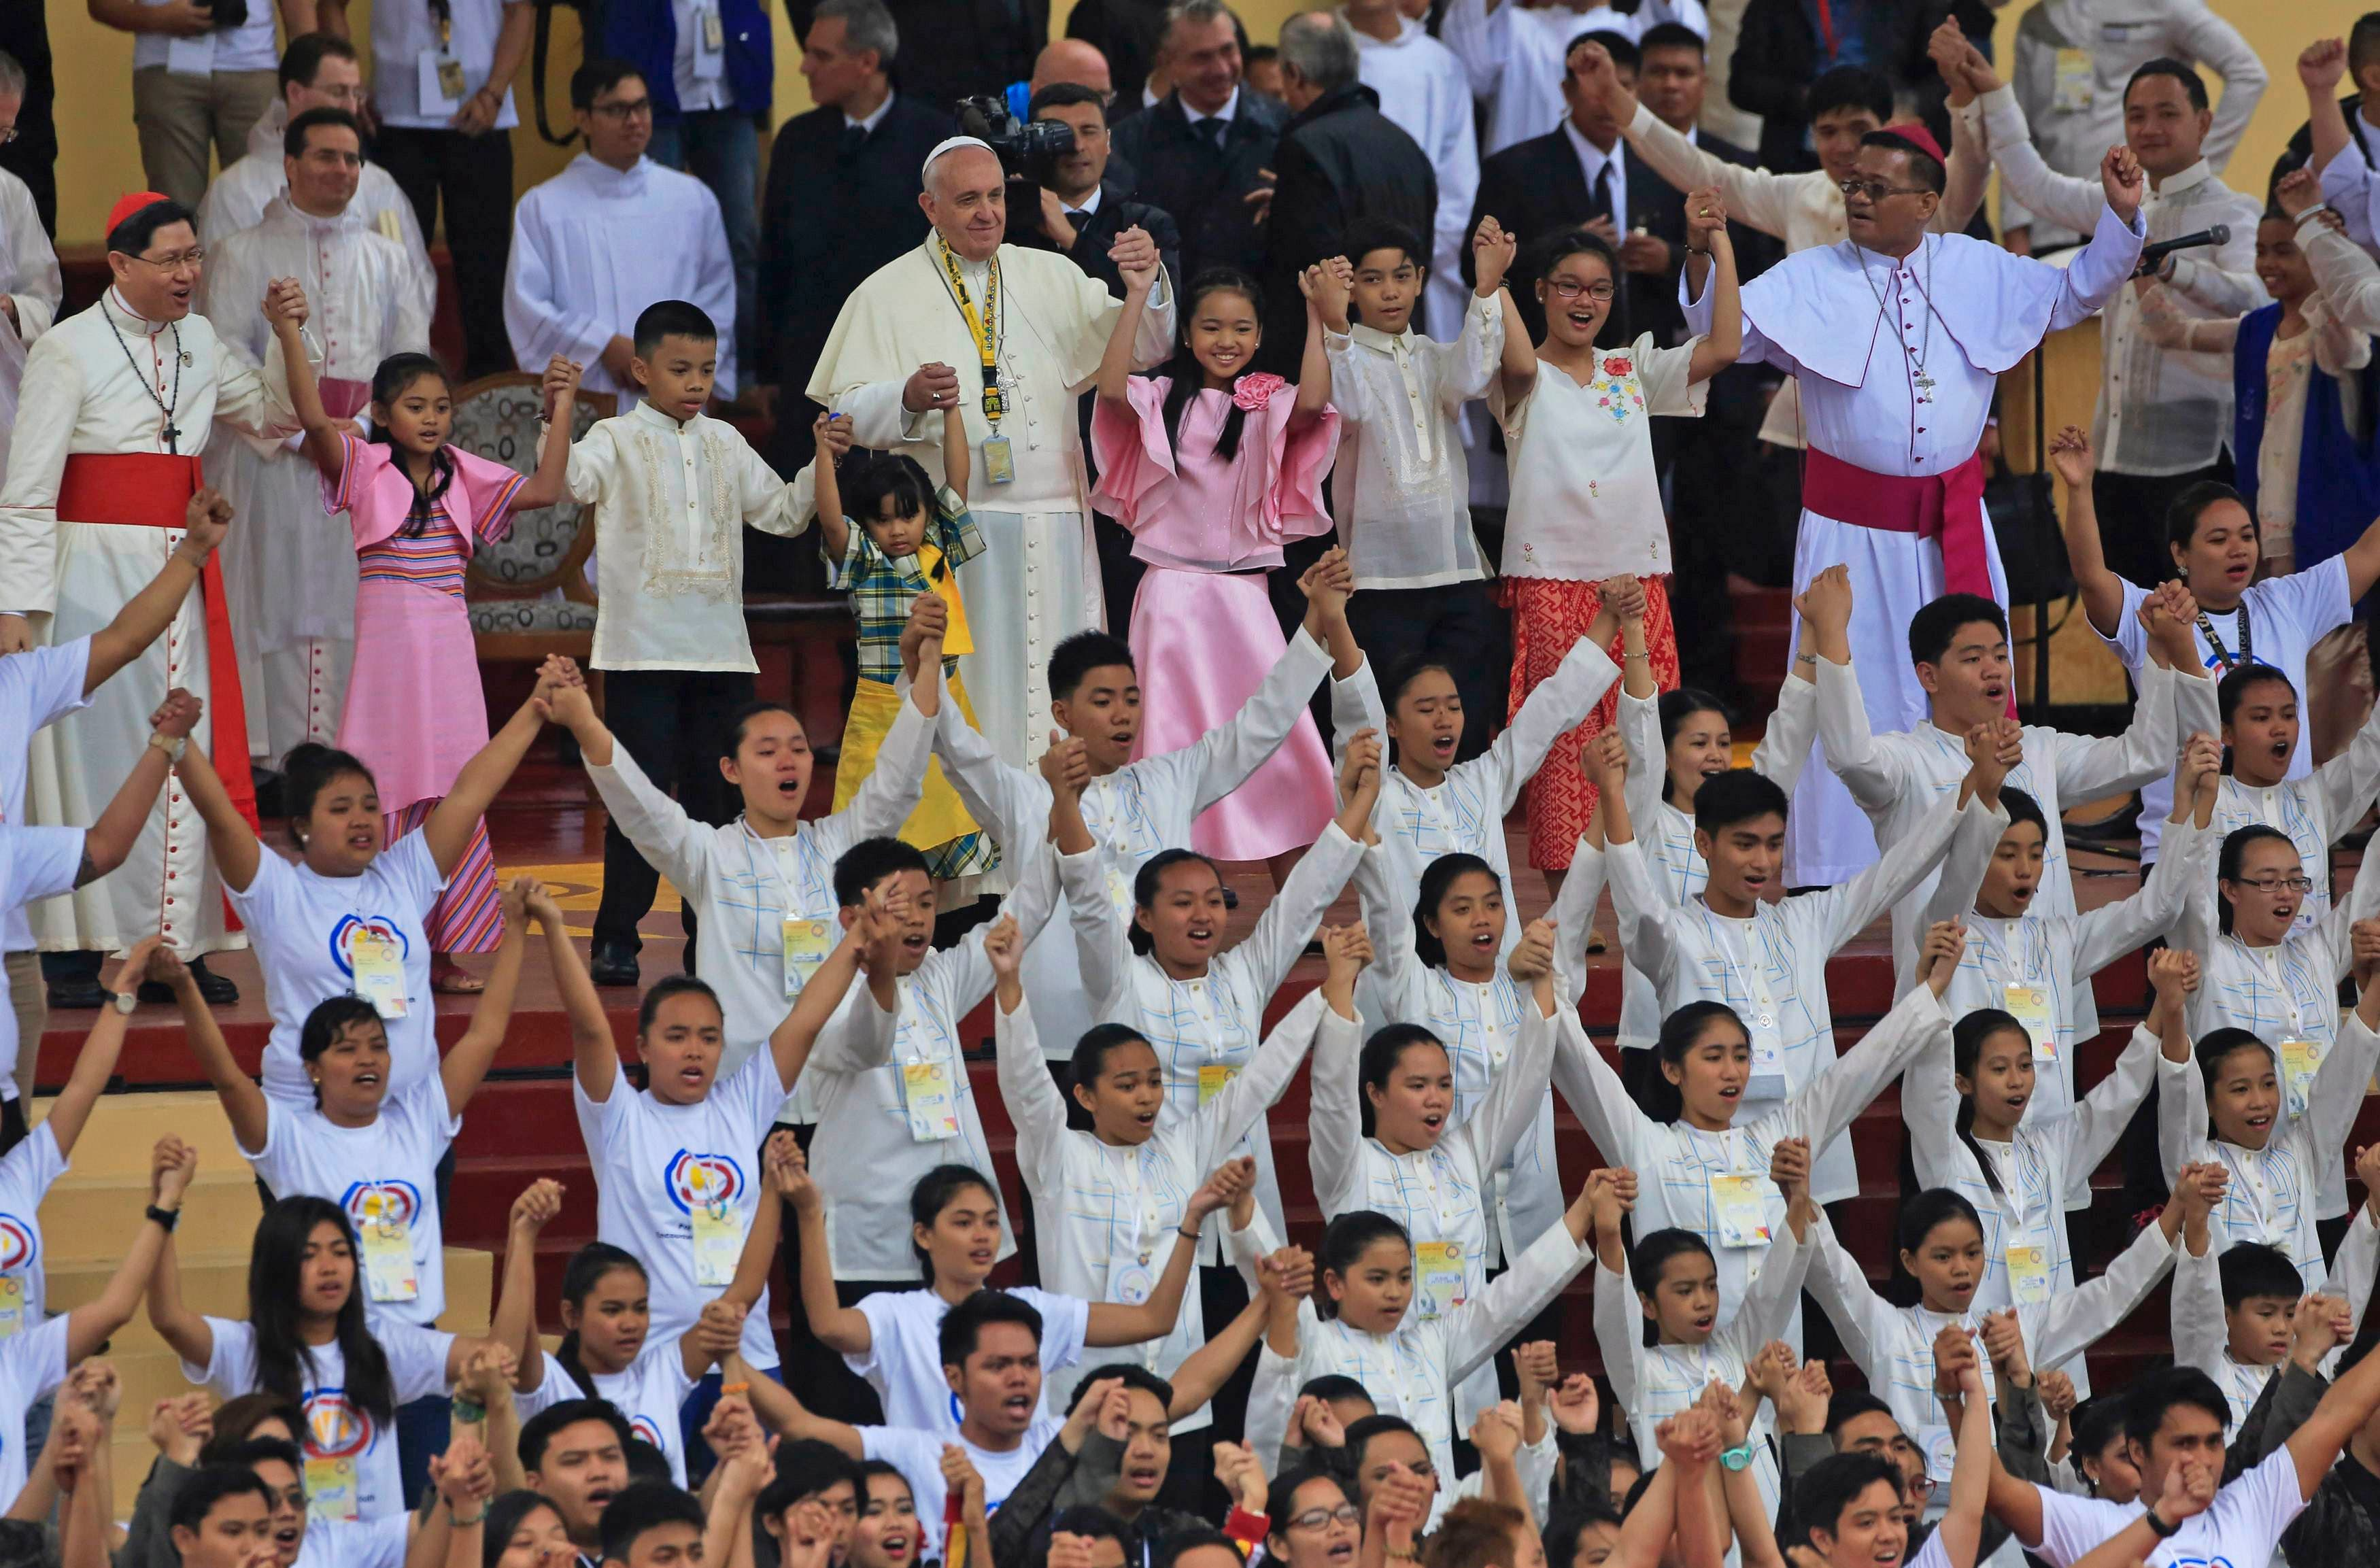 Pope Francis welcomed in Manila